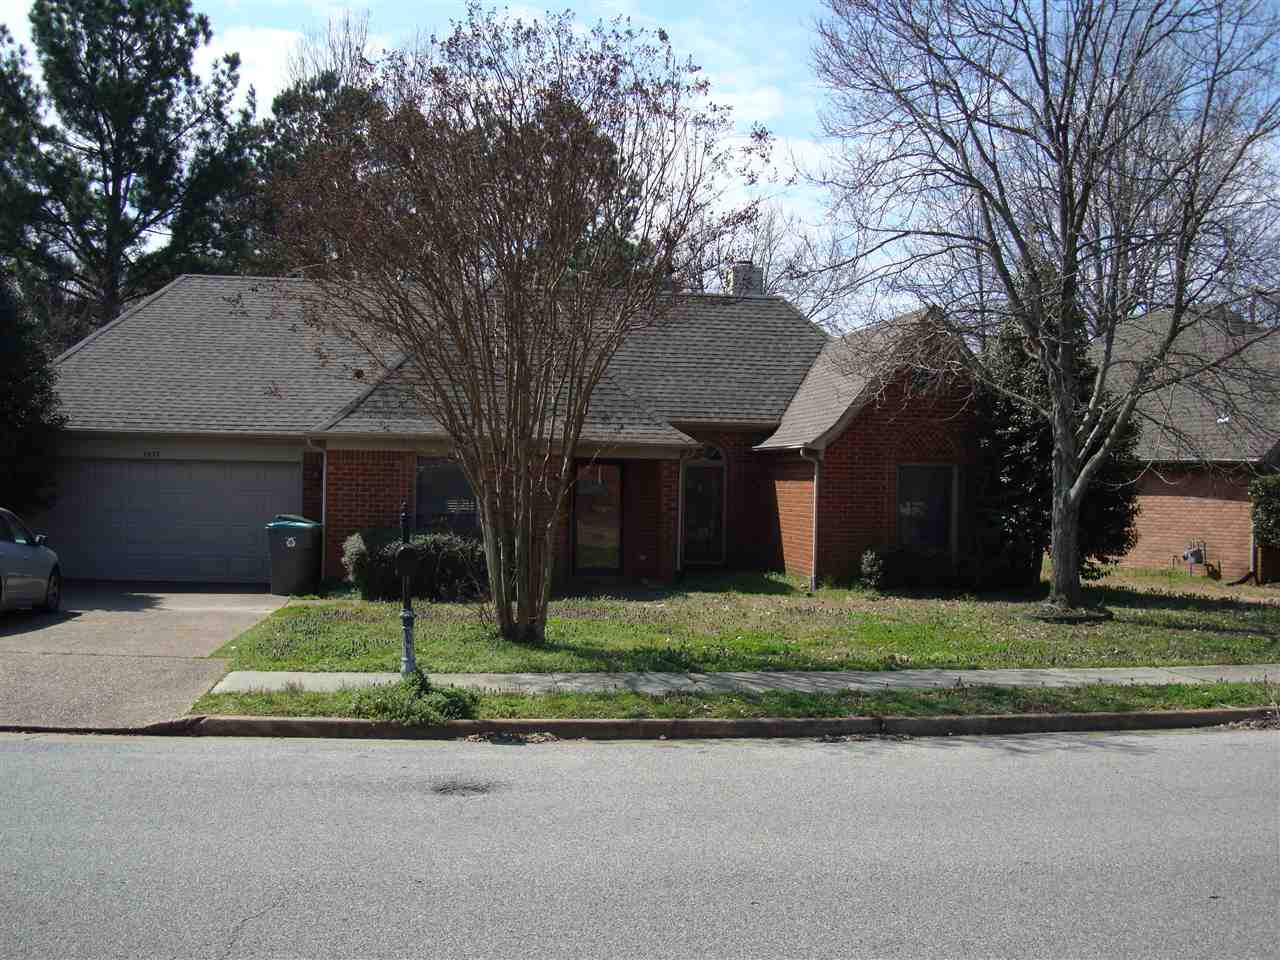 Property for sale at 8577 Overcup Oaks Dr, Memphis,  TN 38018